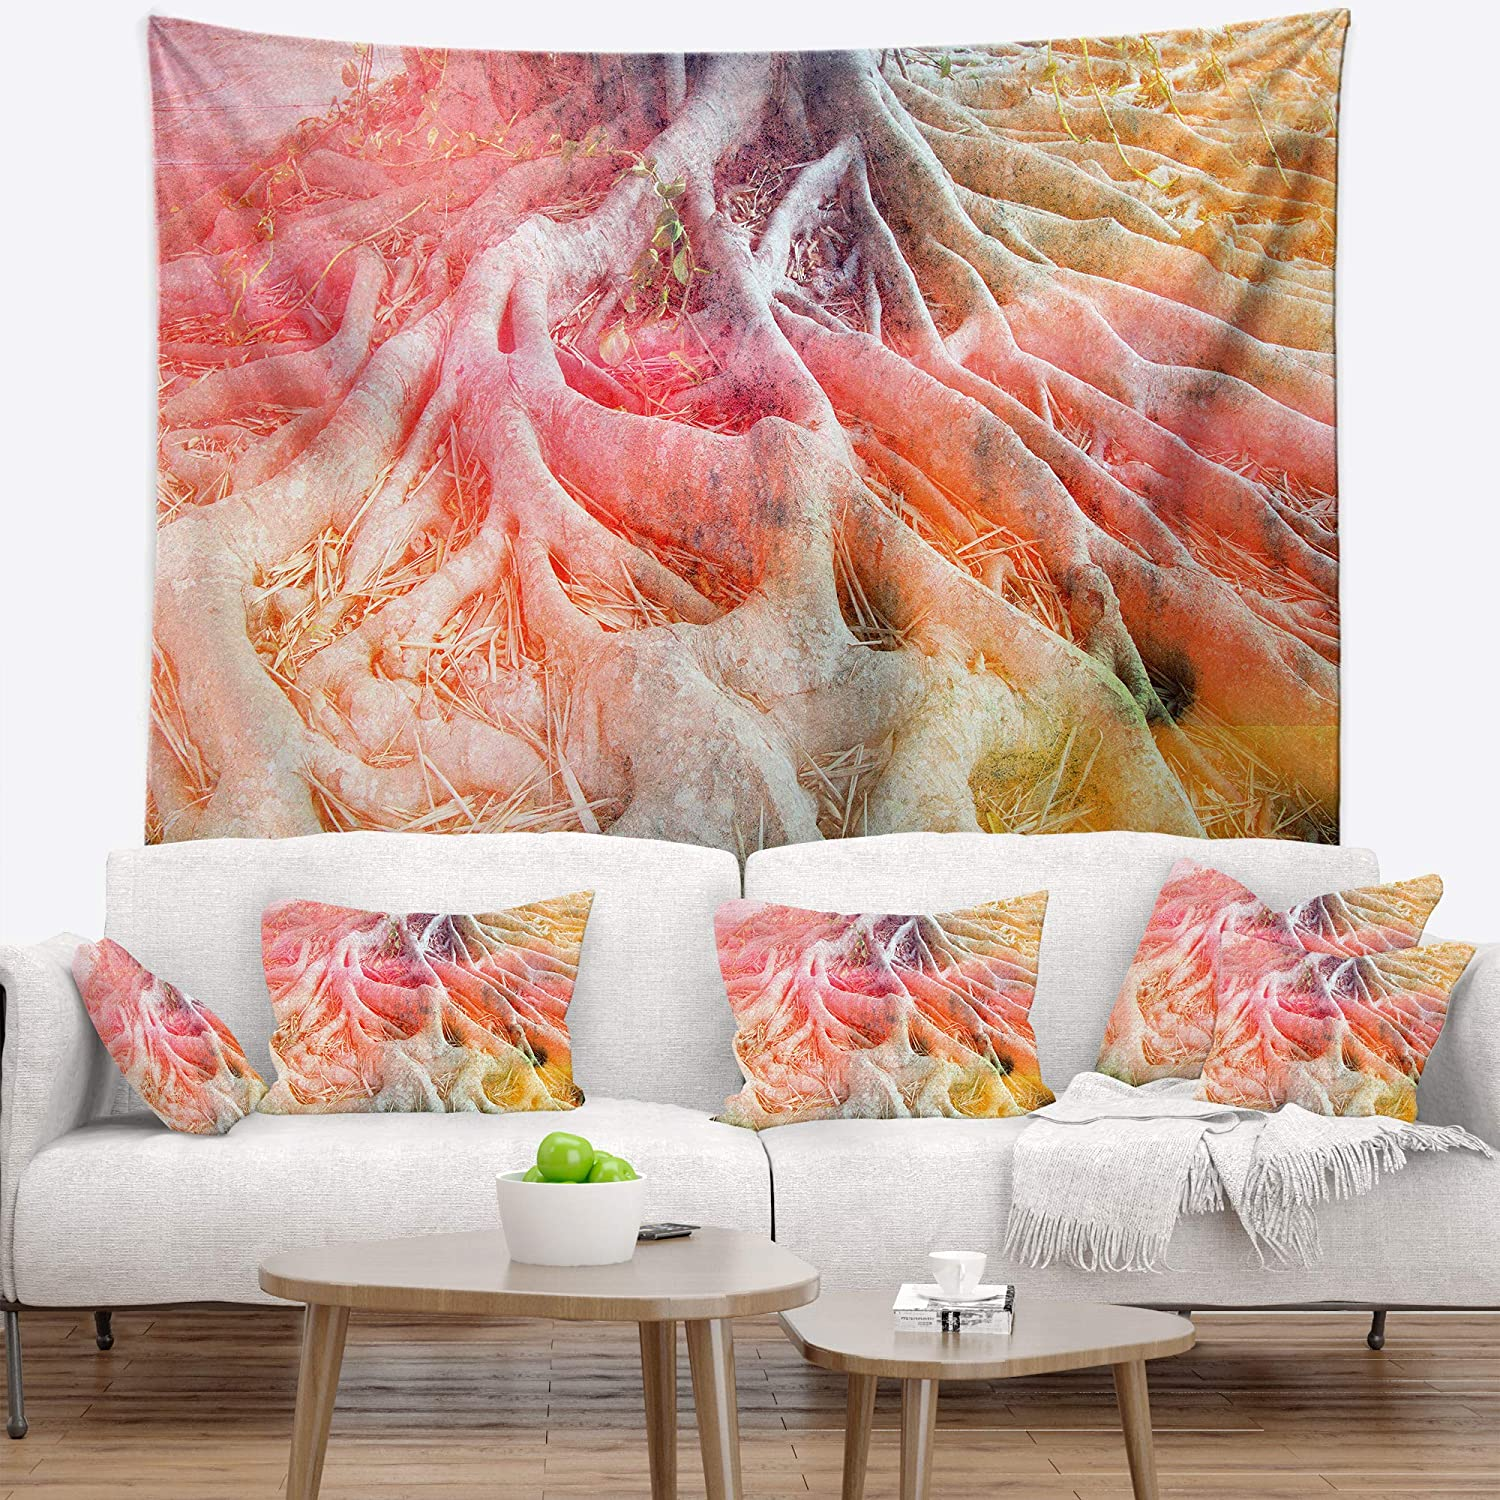 X 32 In Created On Lightweight Polyester Fabric Medium 39 In Designart Tap8588 39 32 Retro Roots Watercolor Trees Painting Blanket Décor Art For Home And Office Wall Tapestry Home Kitchen Home Décor